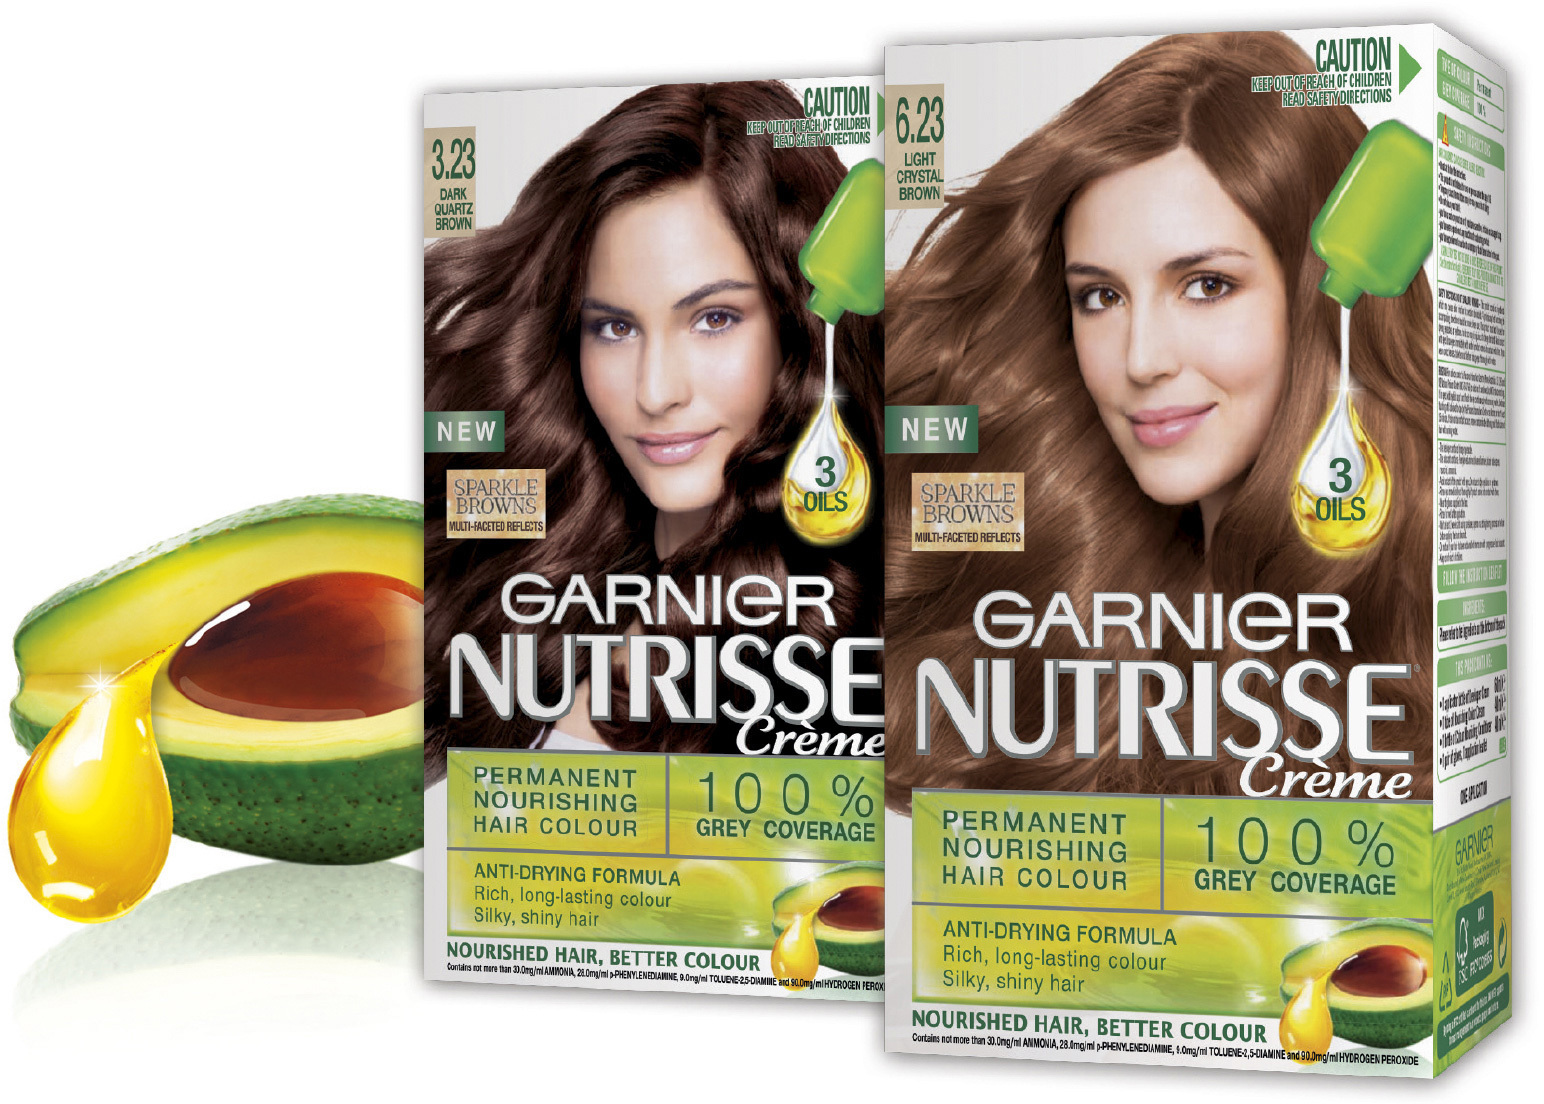 Garnier Nutrisse Hair Color Only 332 After Coupons And Gift Card